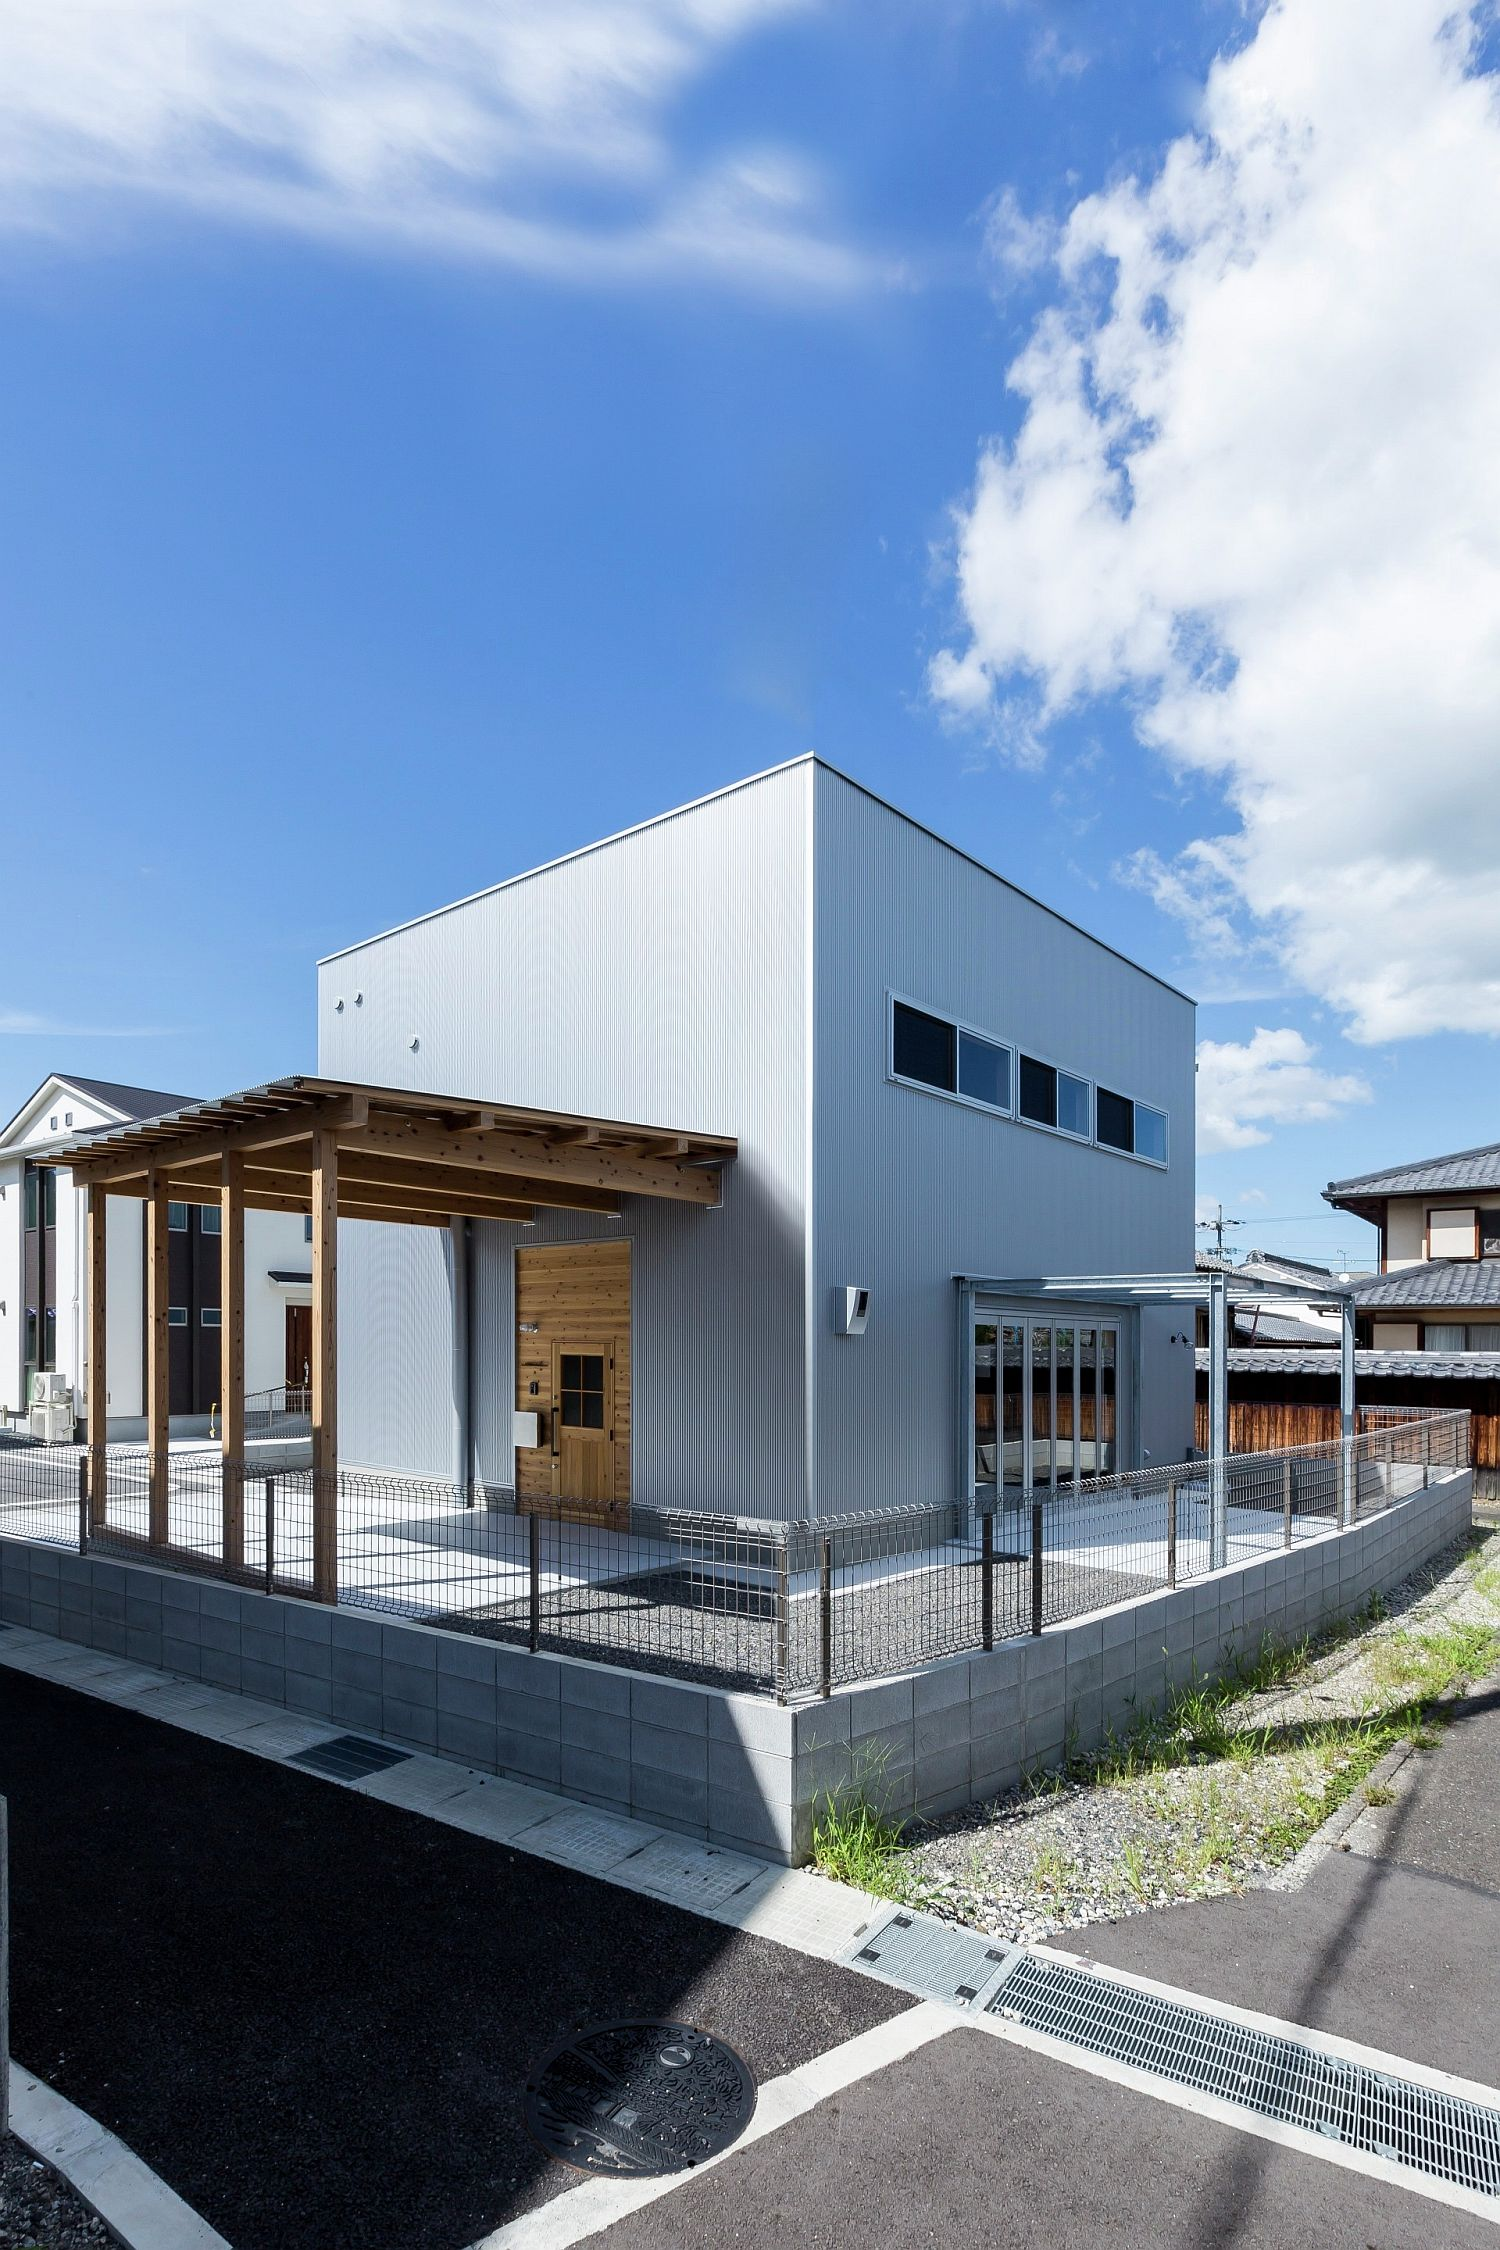 Cubic exterior of the contemporary home draws inspiration from old warehouses